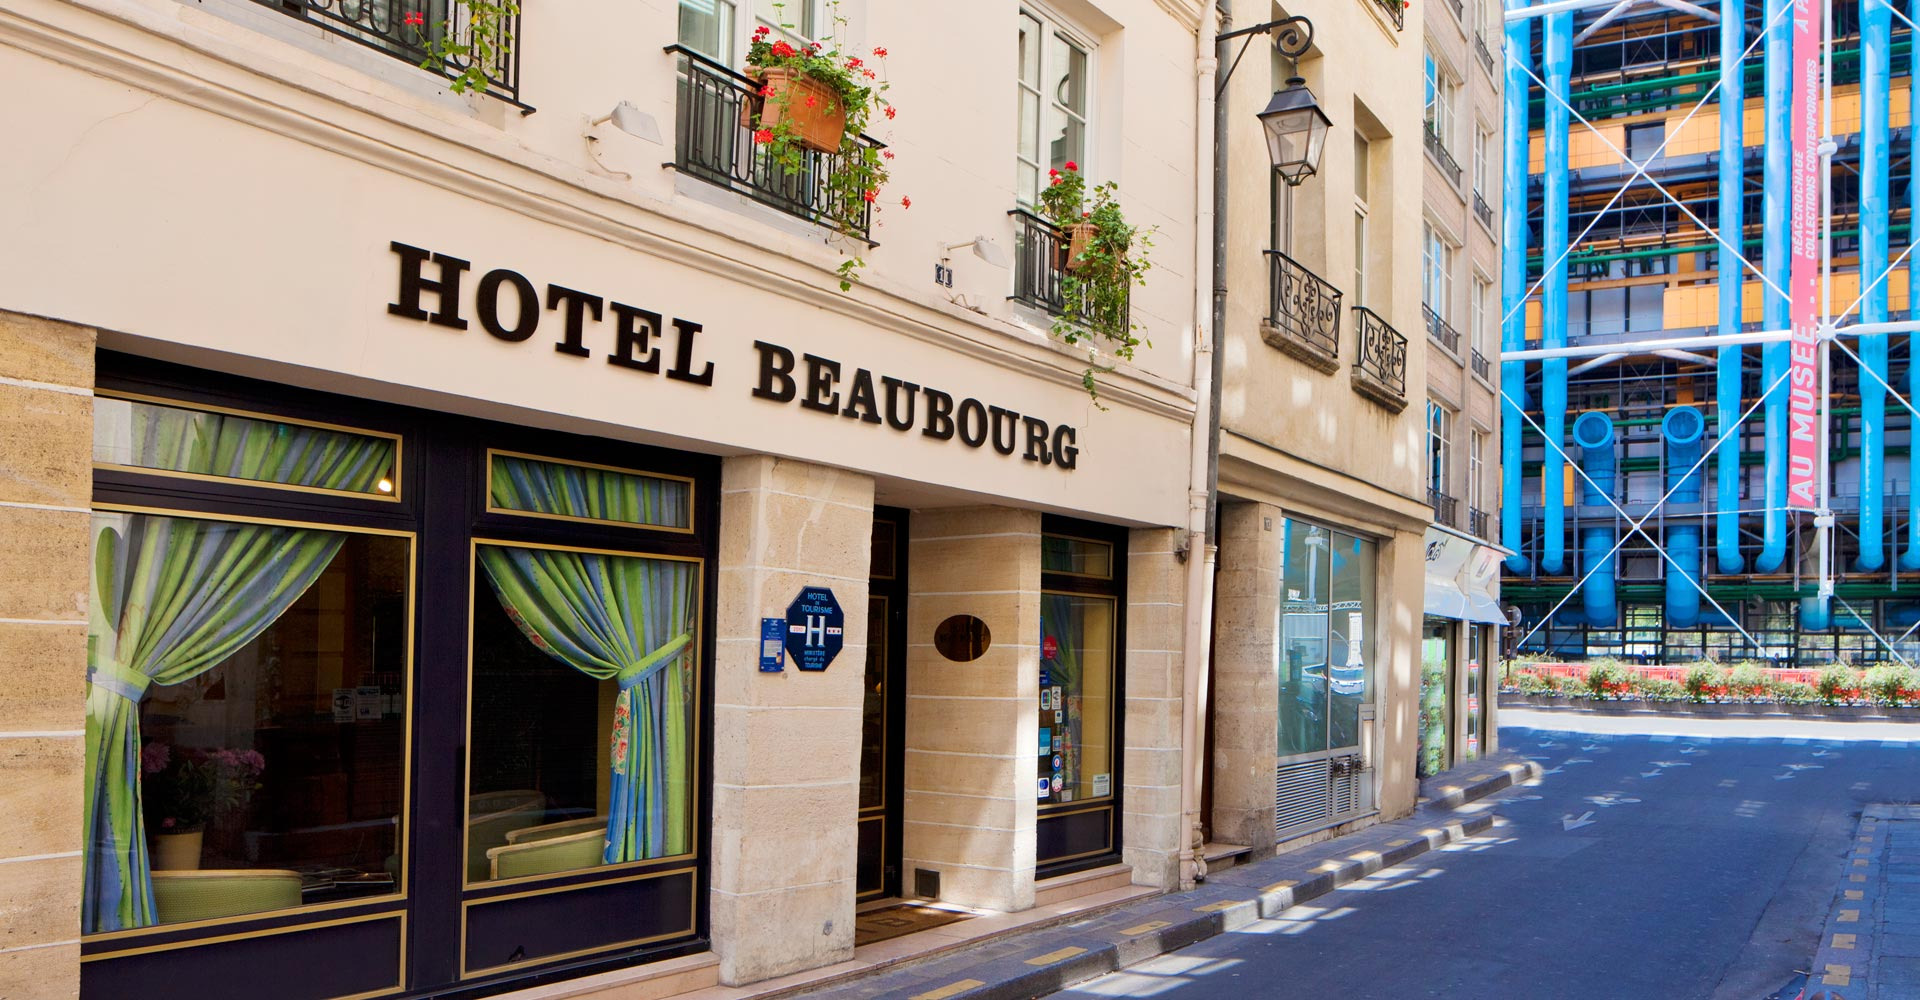 Hotel-beaubourg-Paris_hotel---2